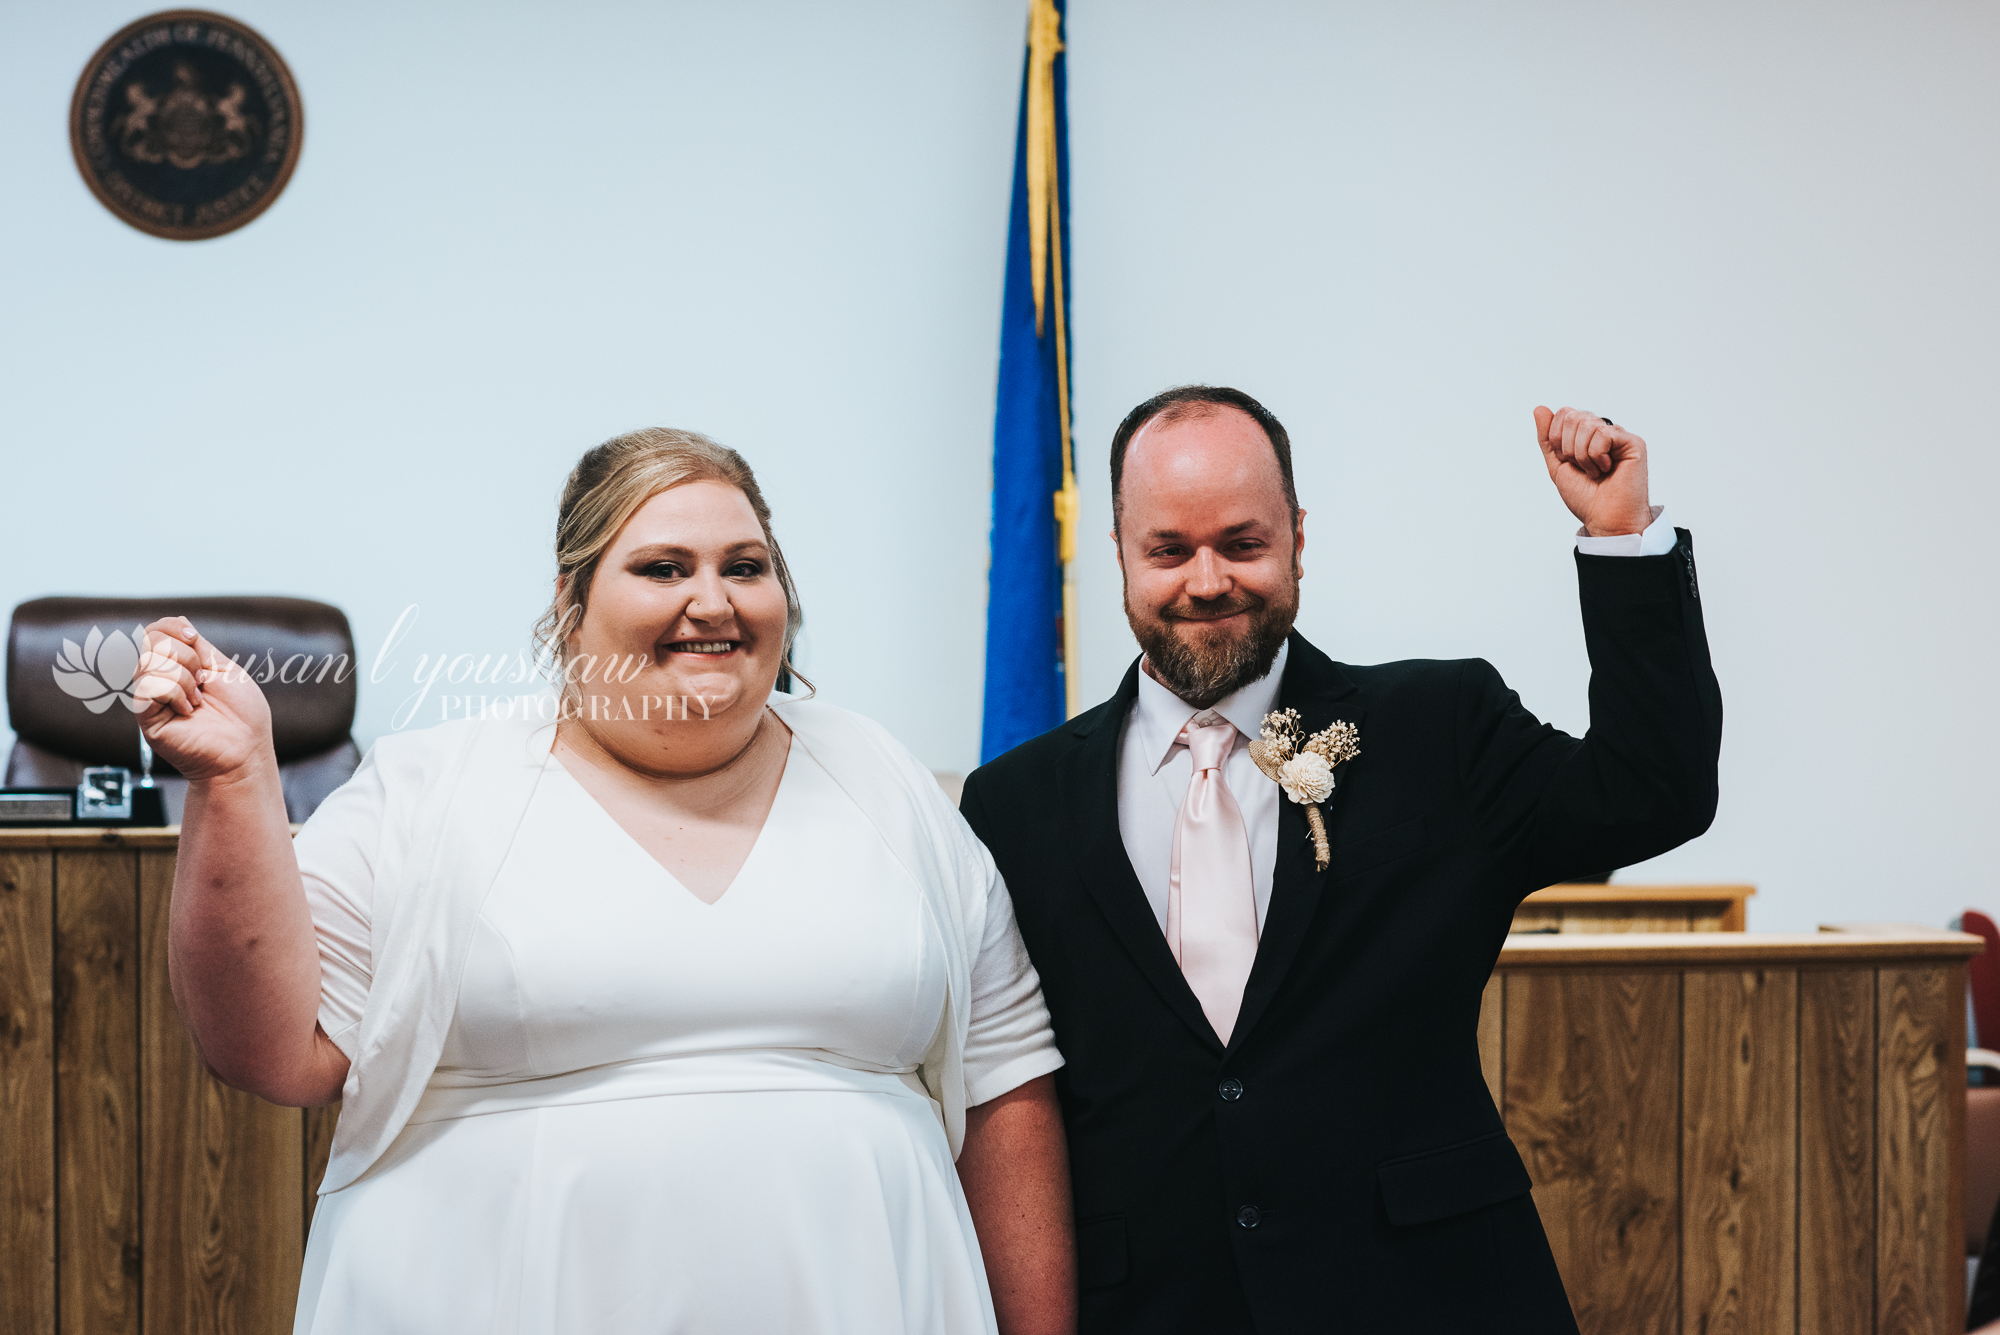 Bill and Sarah Wedding Photos 06-08-2019 SLY Photography -34.jpg